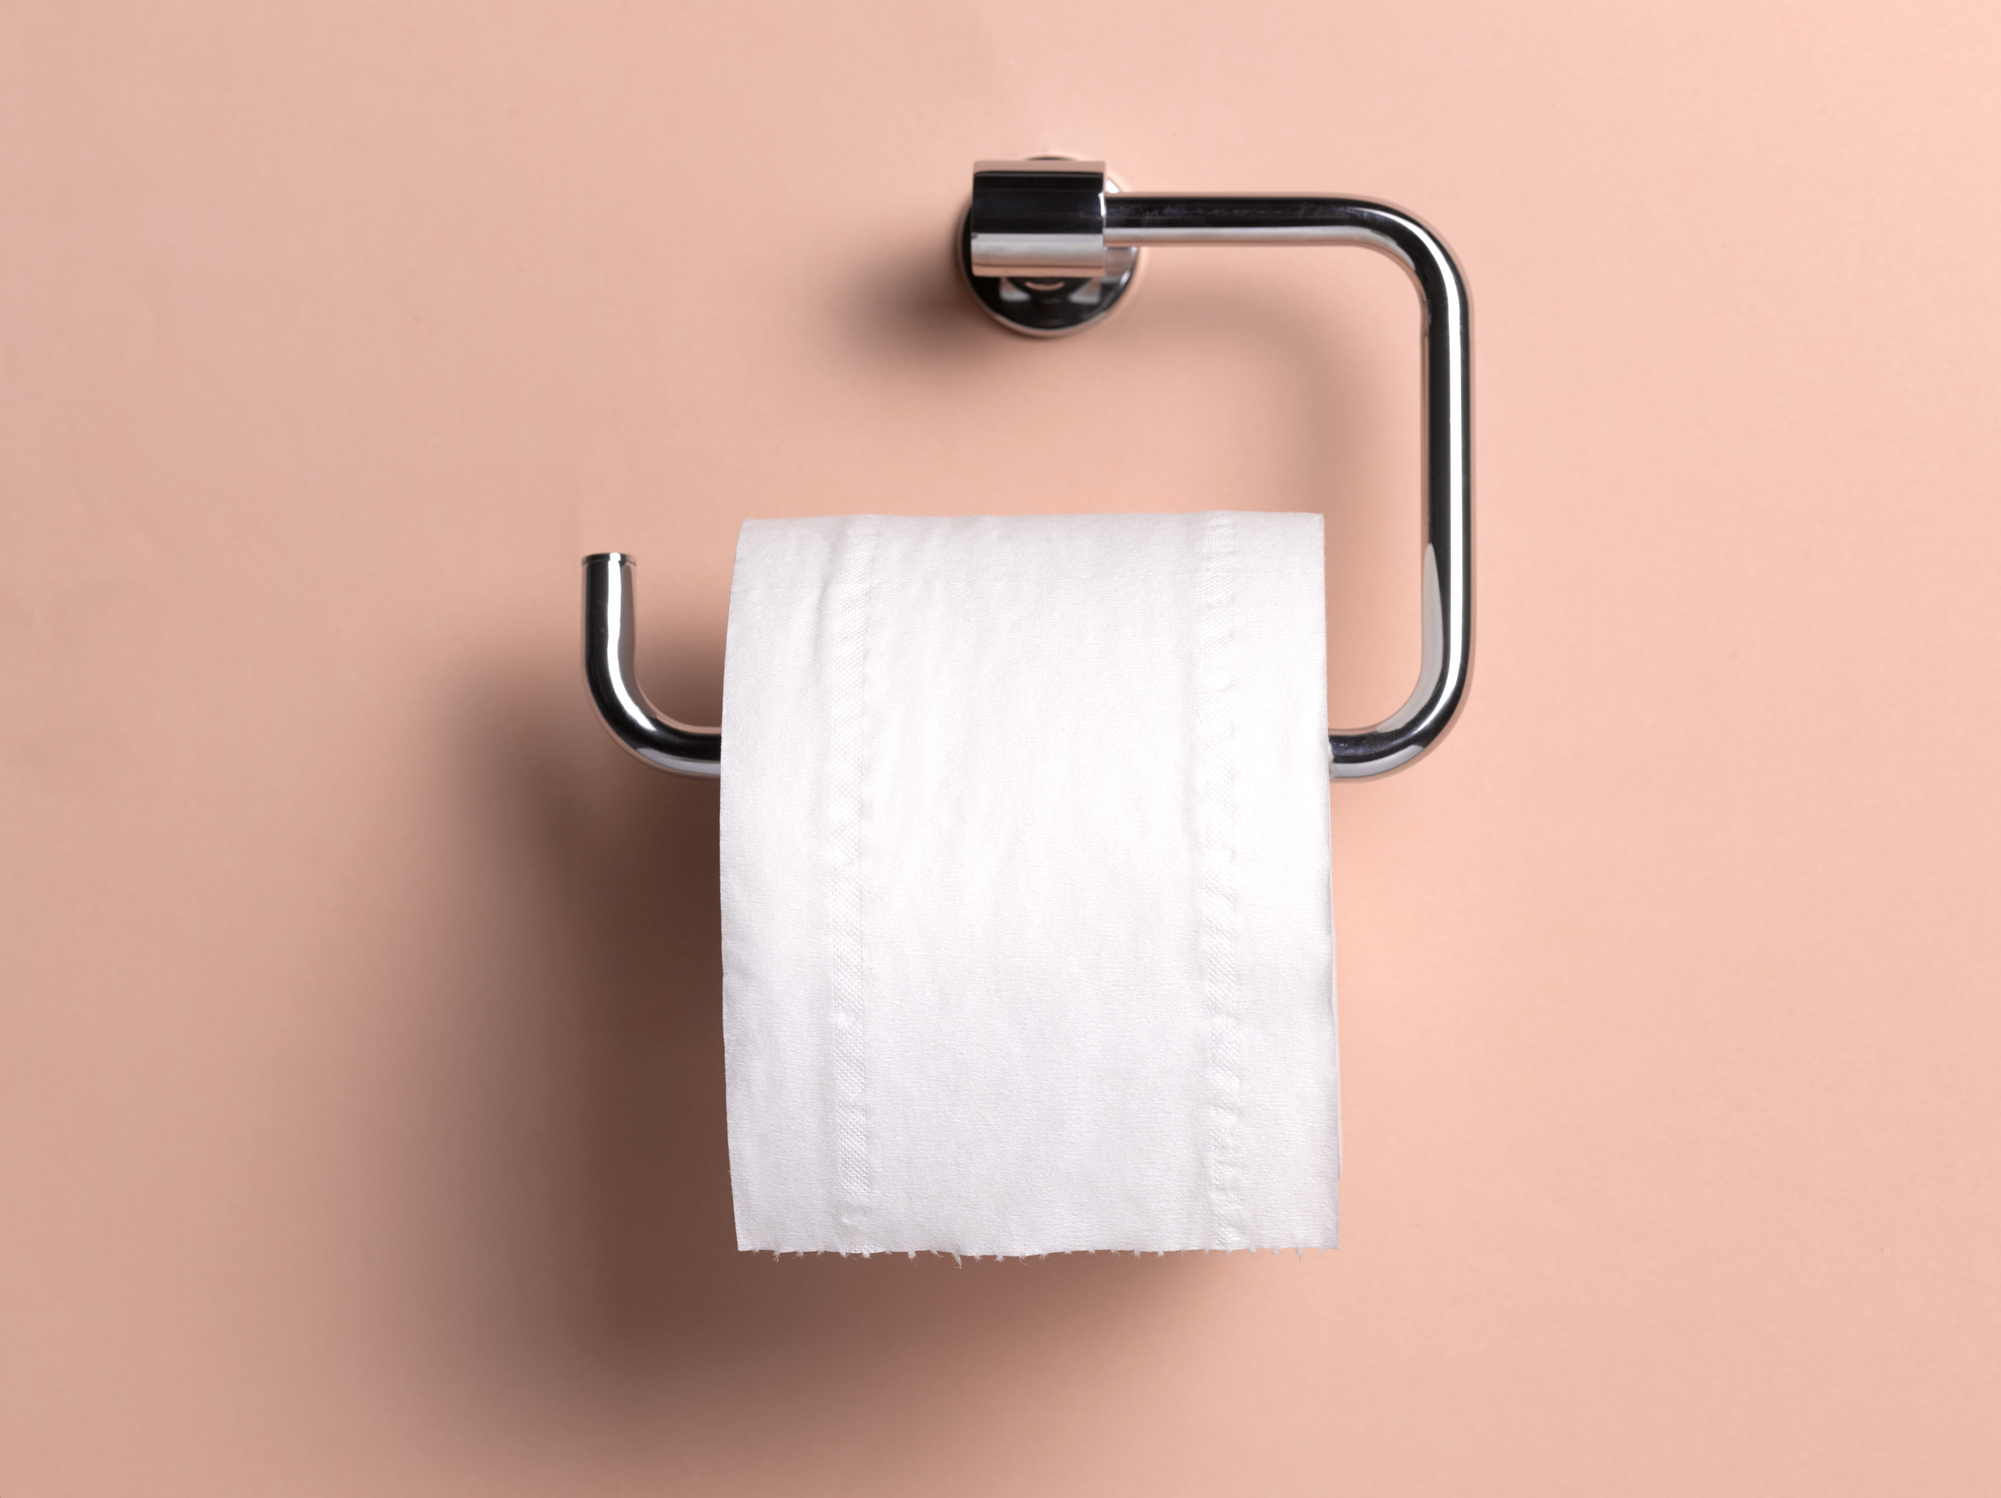 Scientists Say This Popular Bathroom Accessory Really Does Help You Poop Better